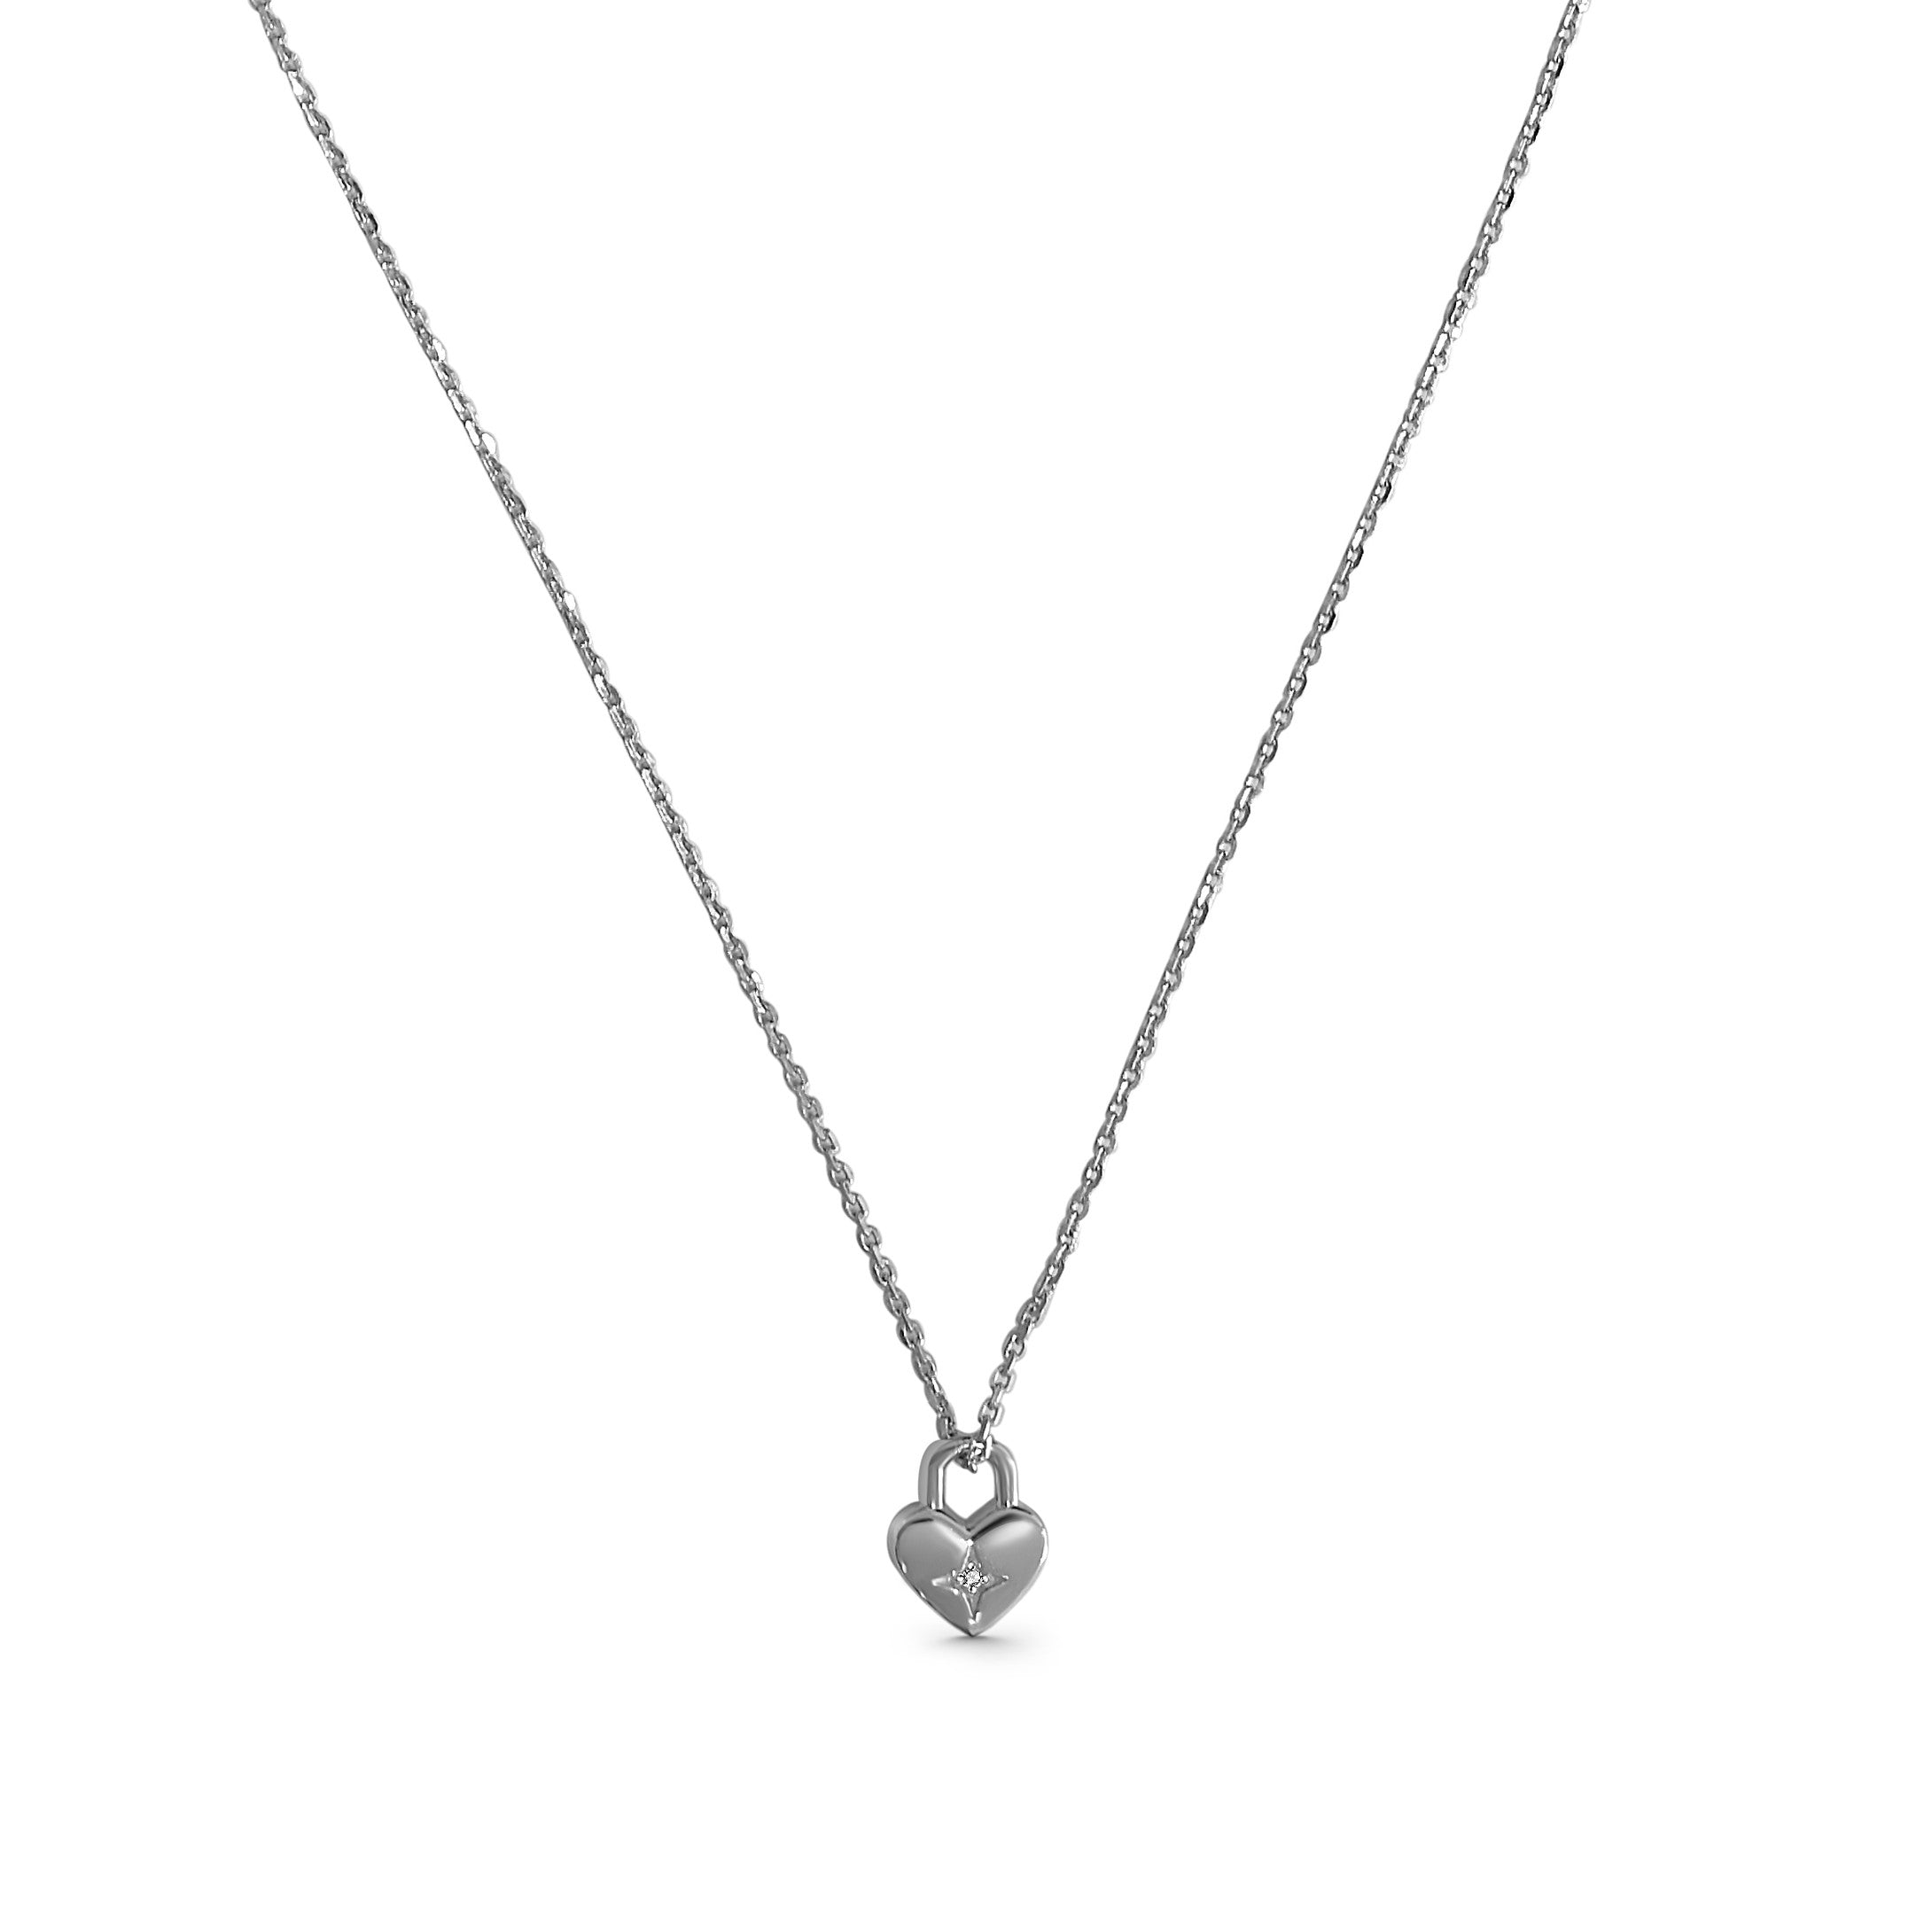 product image of silver necklace with small loveheart padlock pendant with gemstone in the middle on a white background